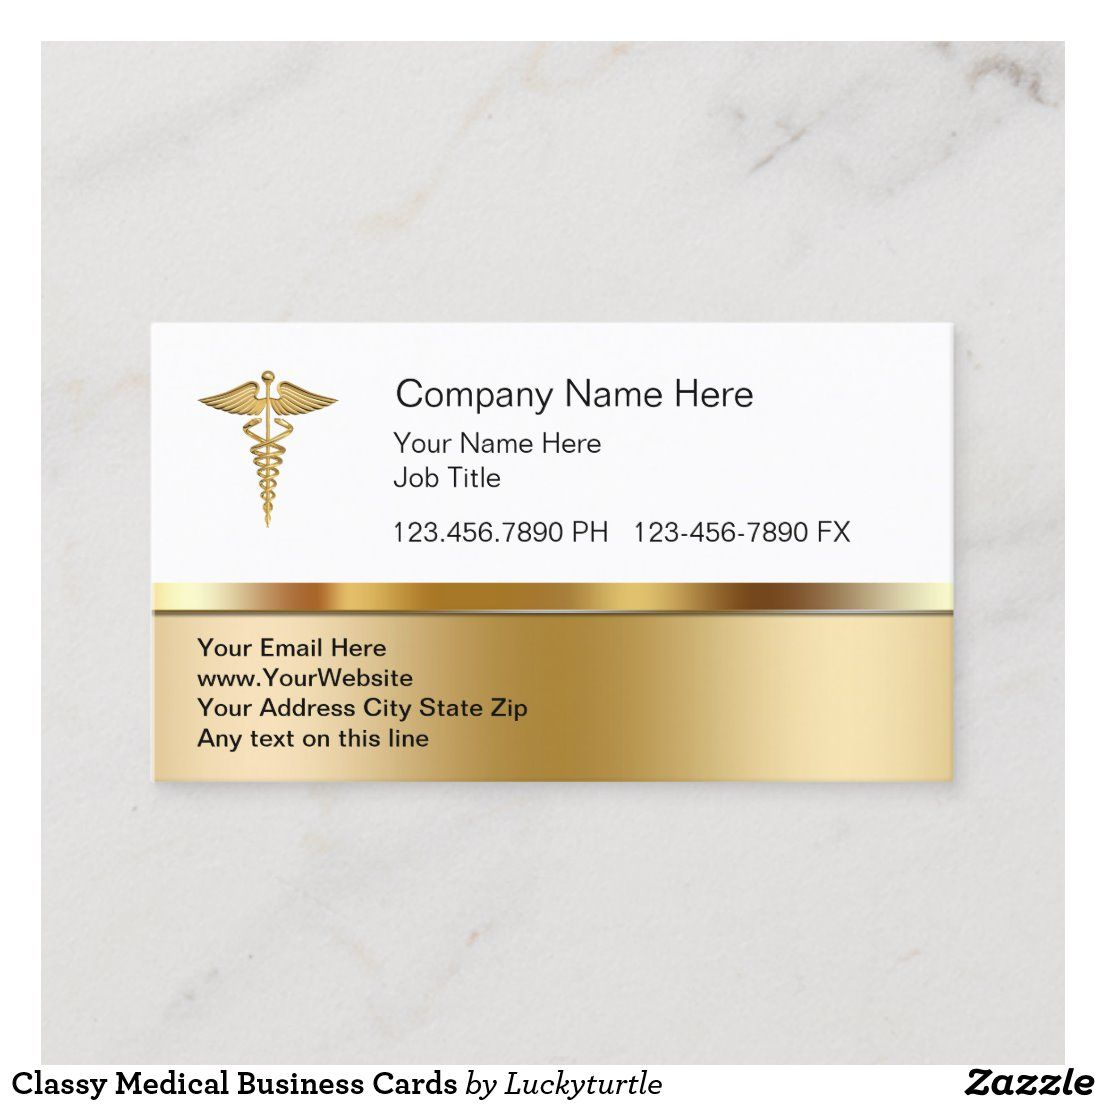 Classy medical business cards in 2020